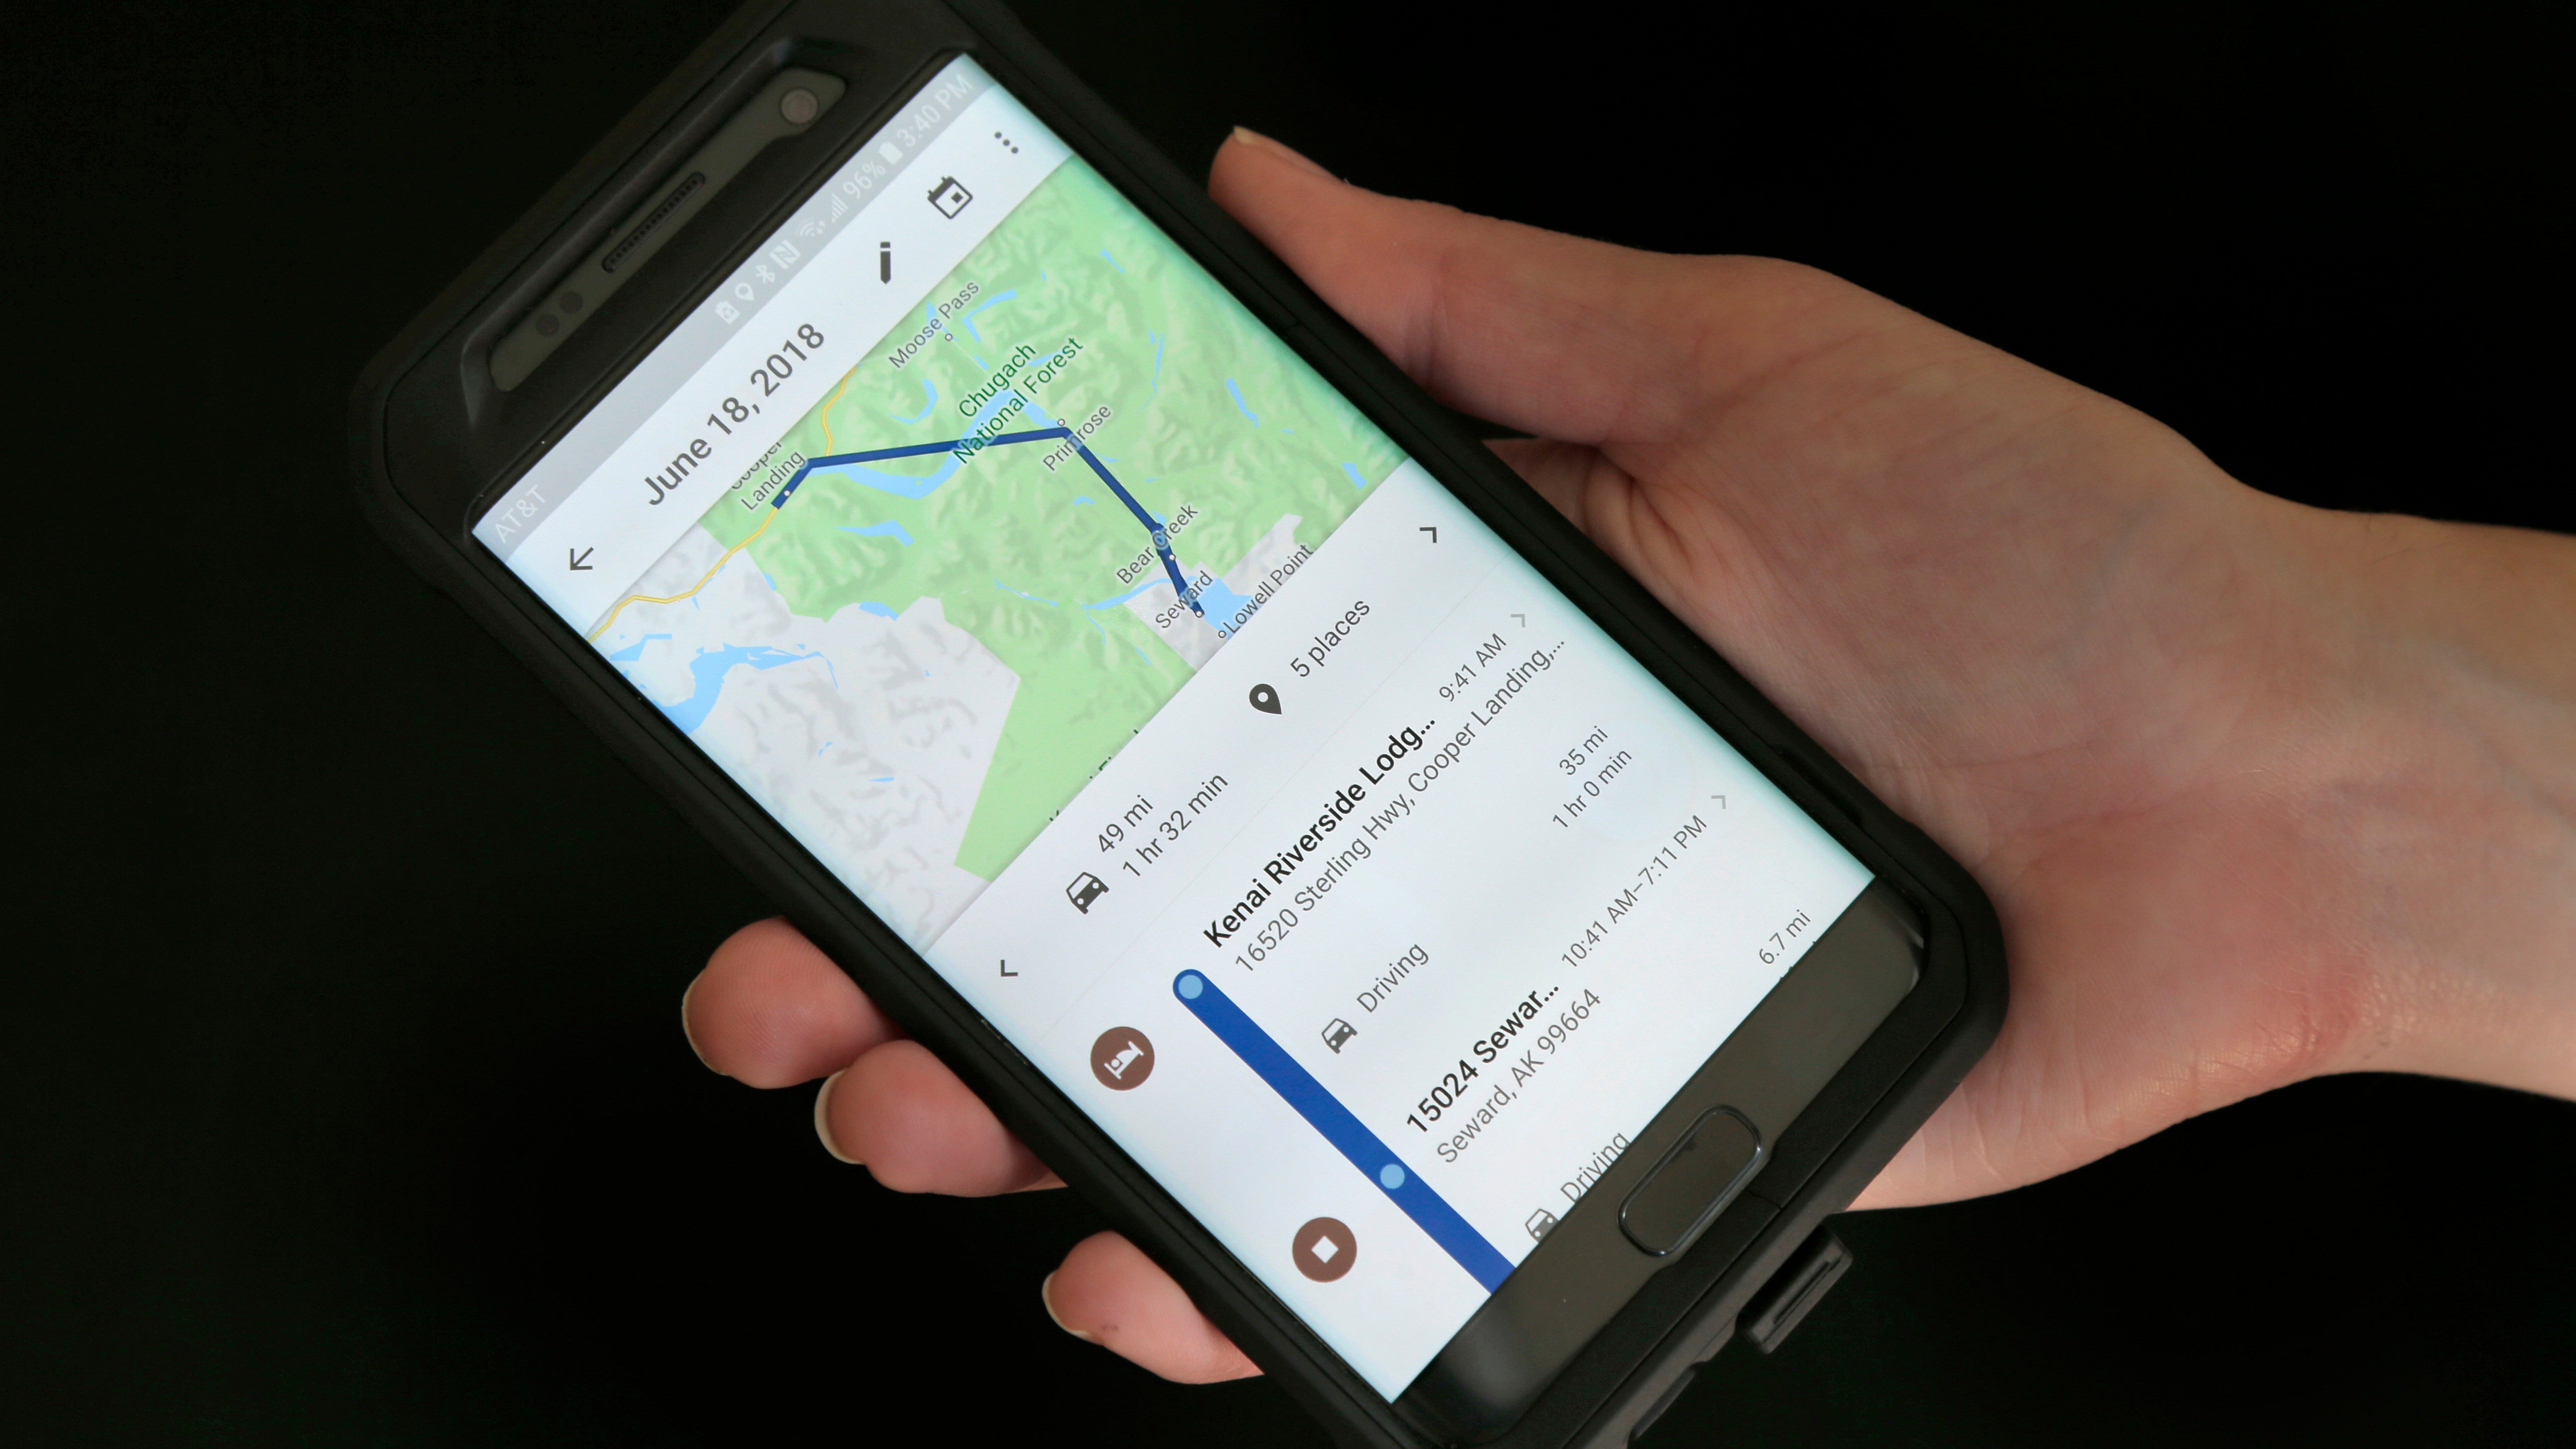 Mobile Location Data Stockpiled By U.S. Telecoms Unveiled